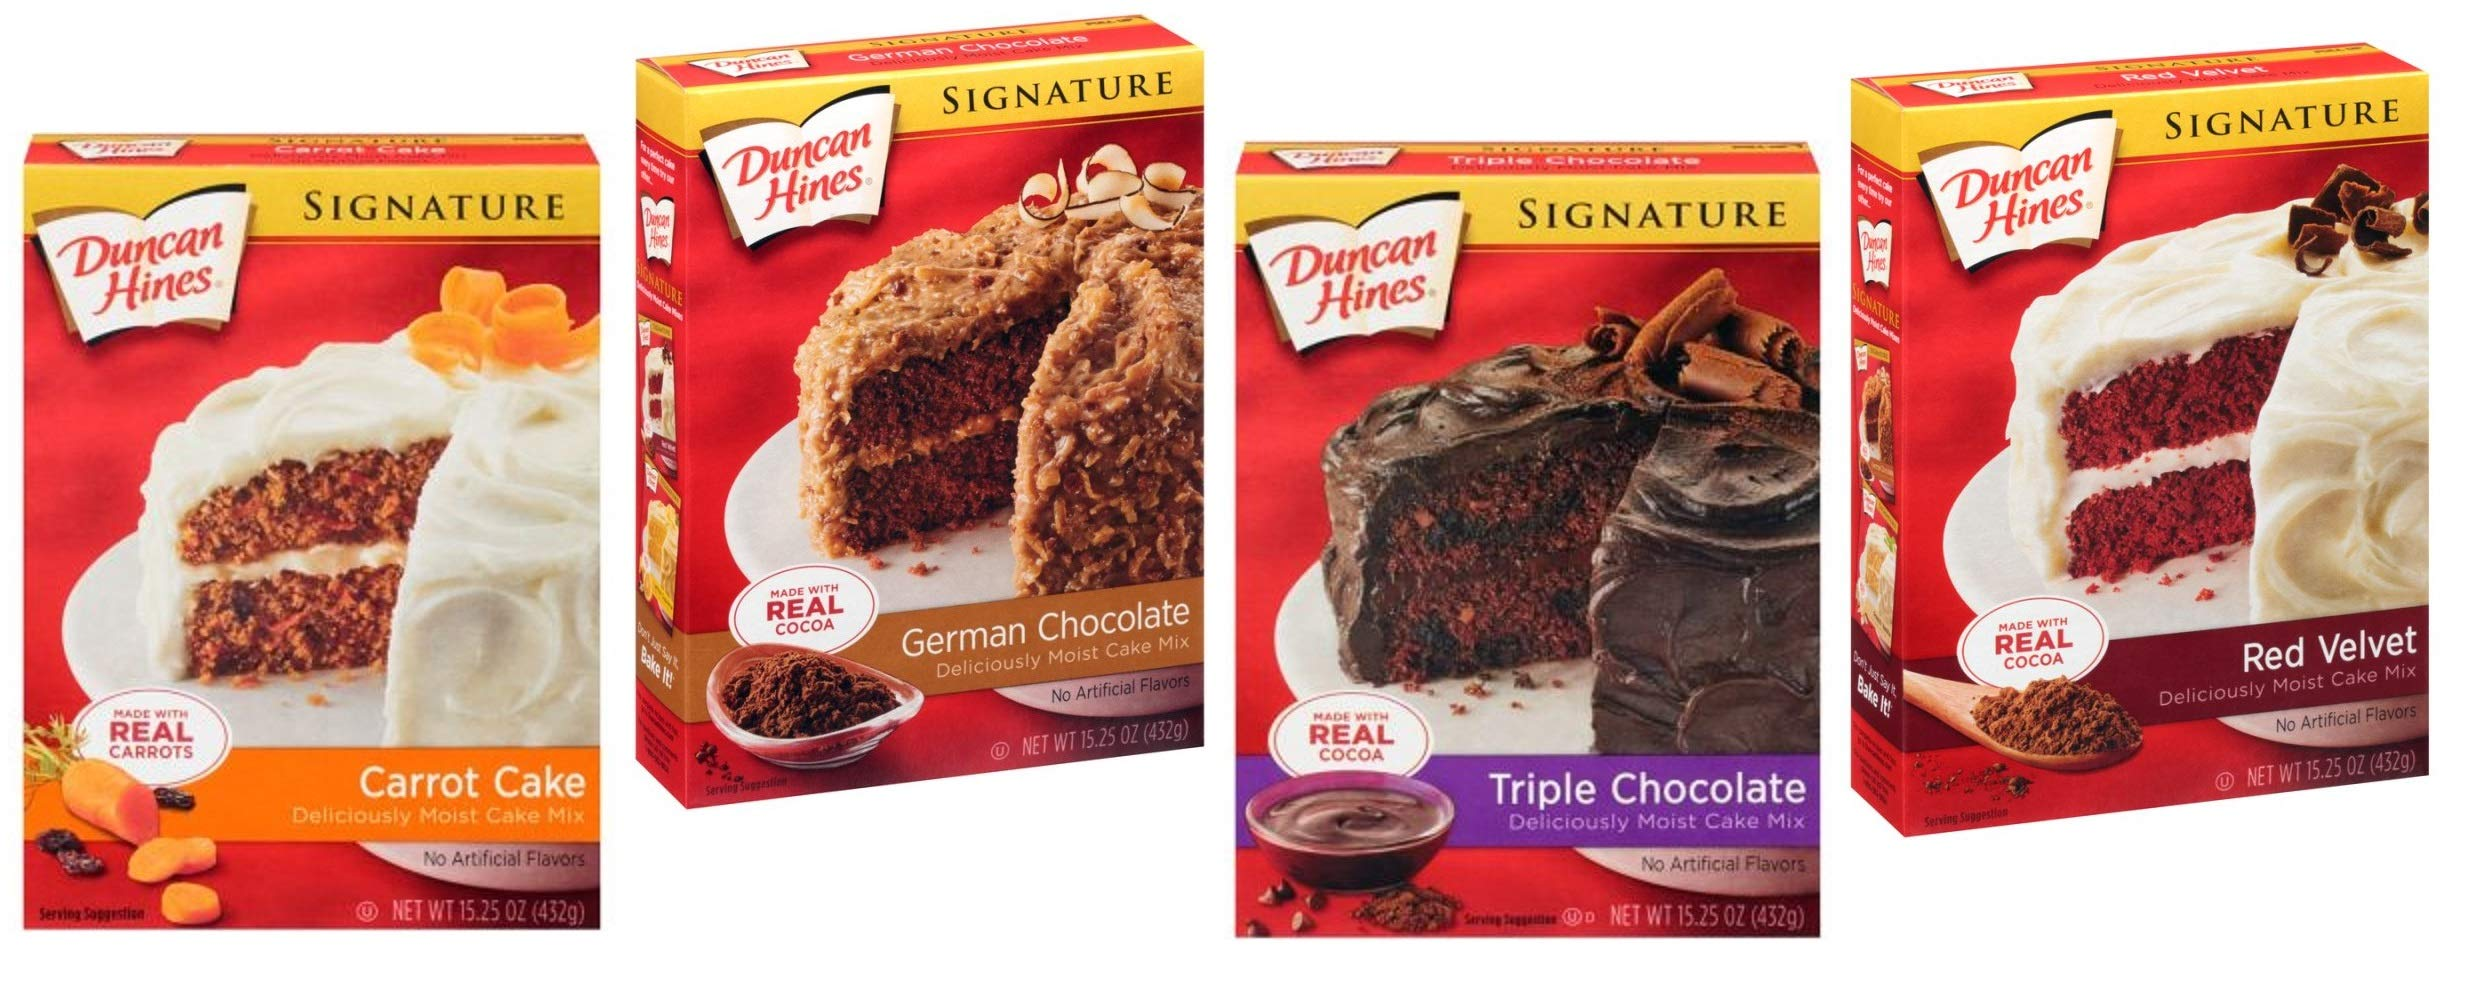 Duncan Hines Signature Cake Mix Variety 4 Pack Bundle - German Chocolate, Triple Chocolate, Classic Carrot Cake Mix, Red Velvet by Duncan Hines